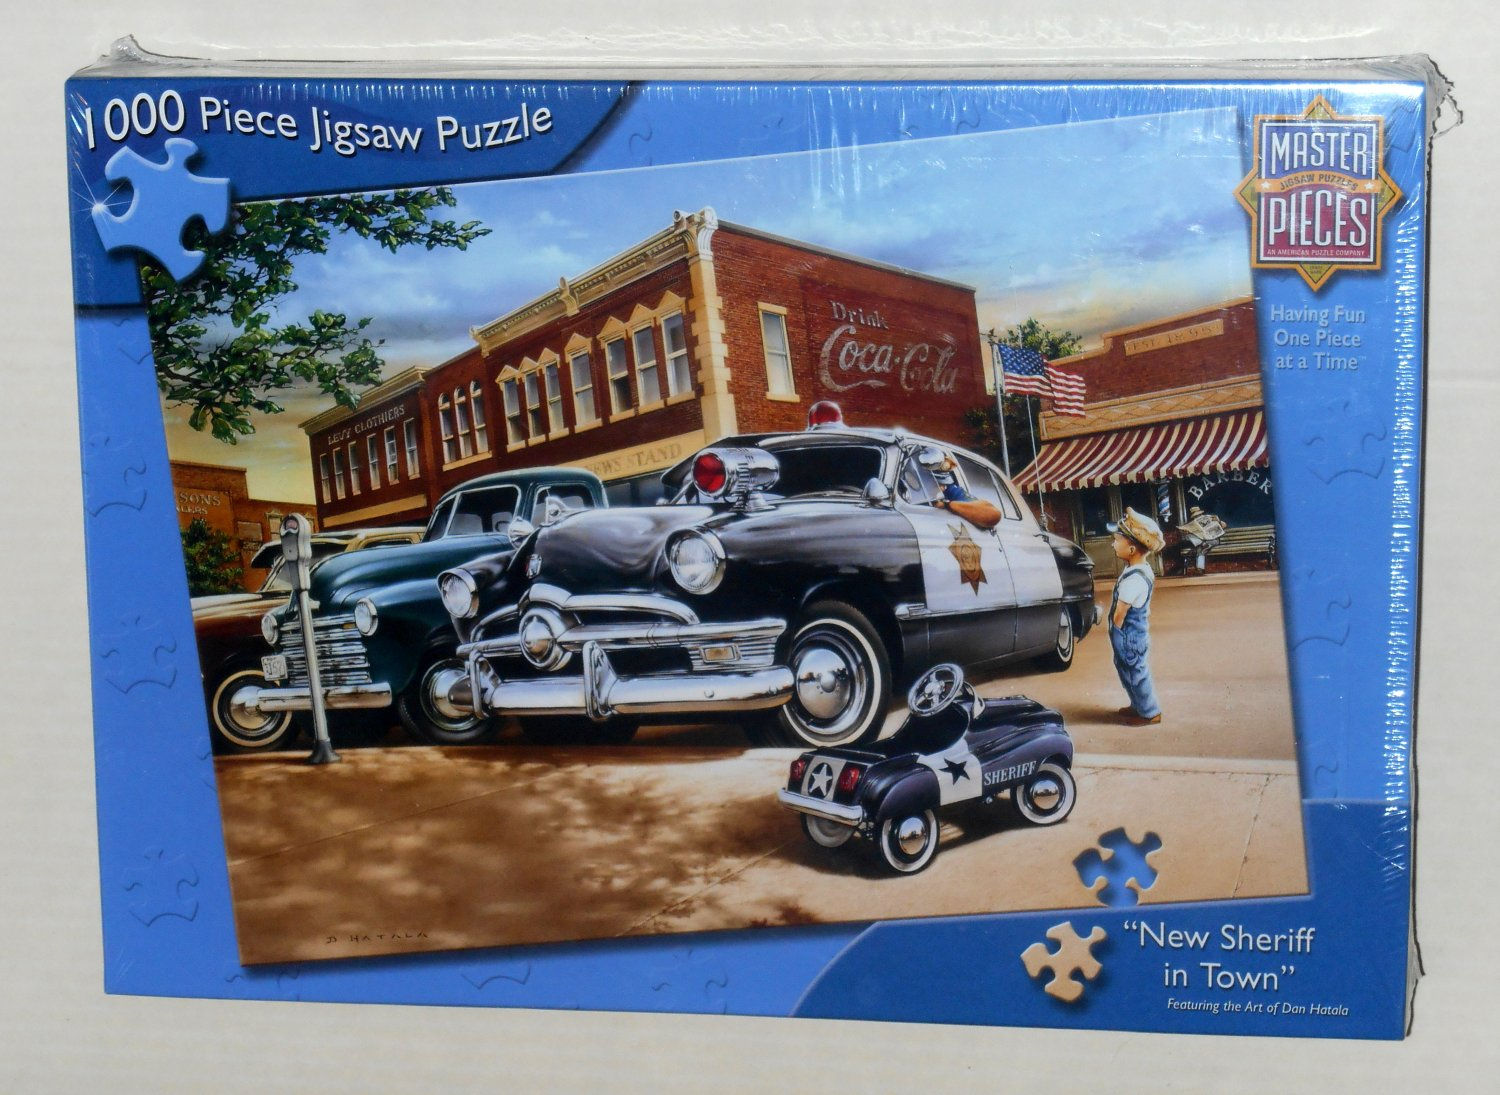 New Sheriff in Town 1000 Piece Jigsaw Puzzle 70209 Coca-Cola Pedal Car Dan Hatala Masterpieces